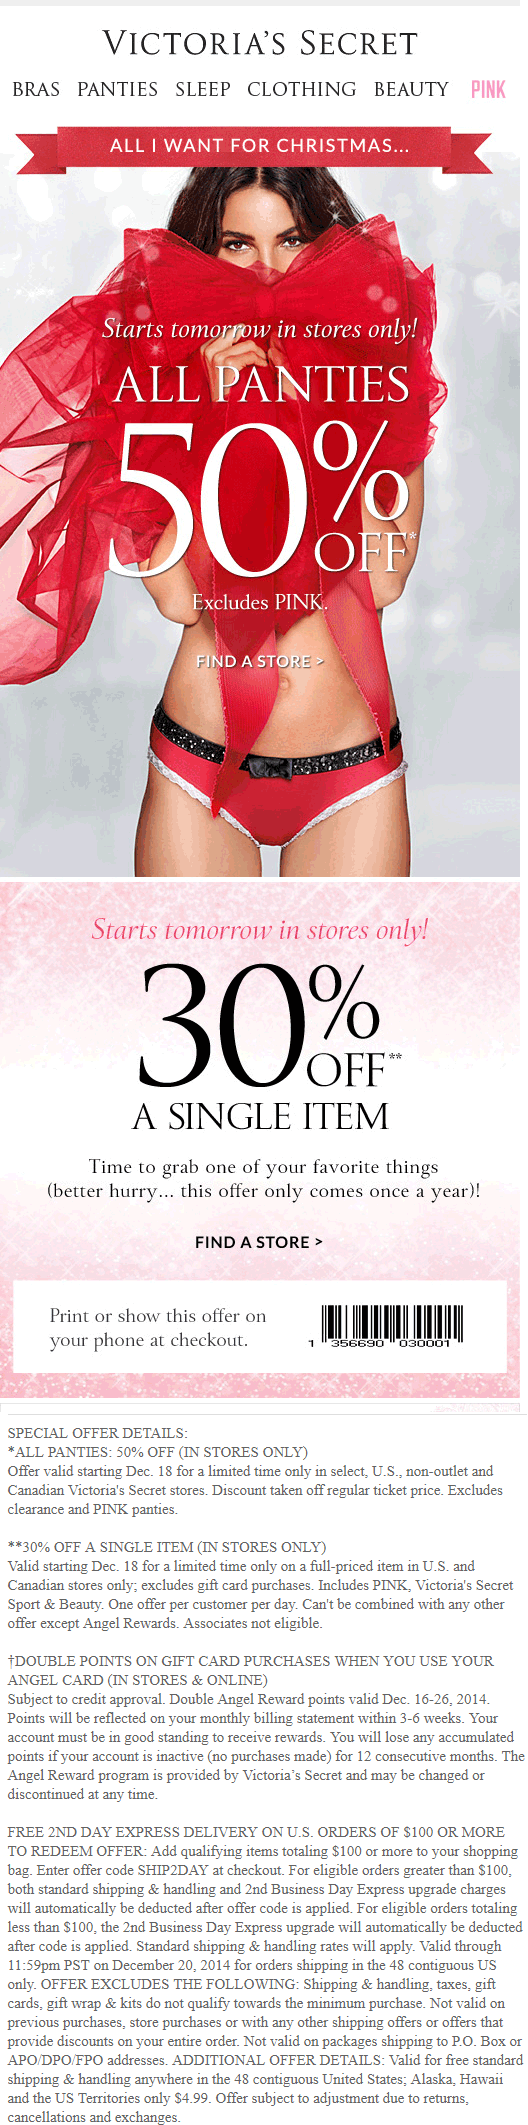 Victorias Secret Coupon July 2017 30% off a single item at Victorias Secret